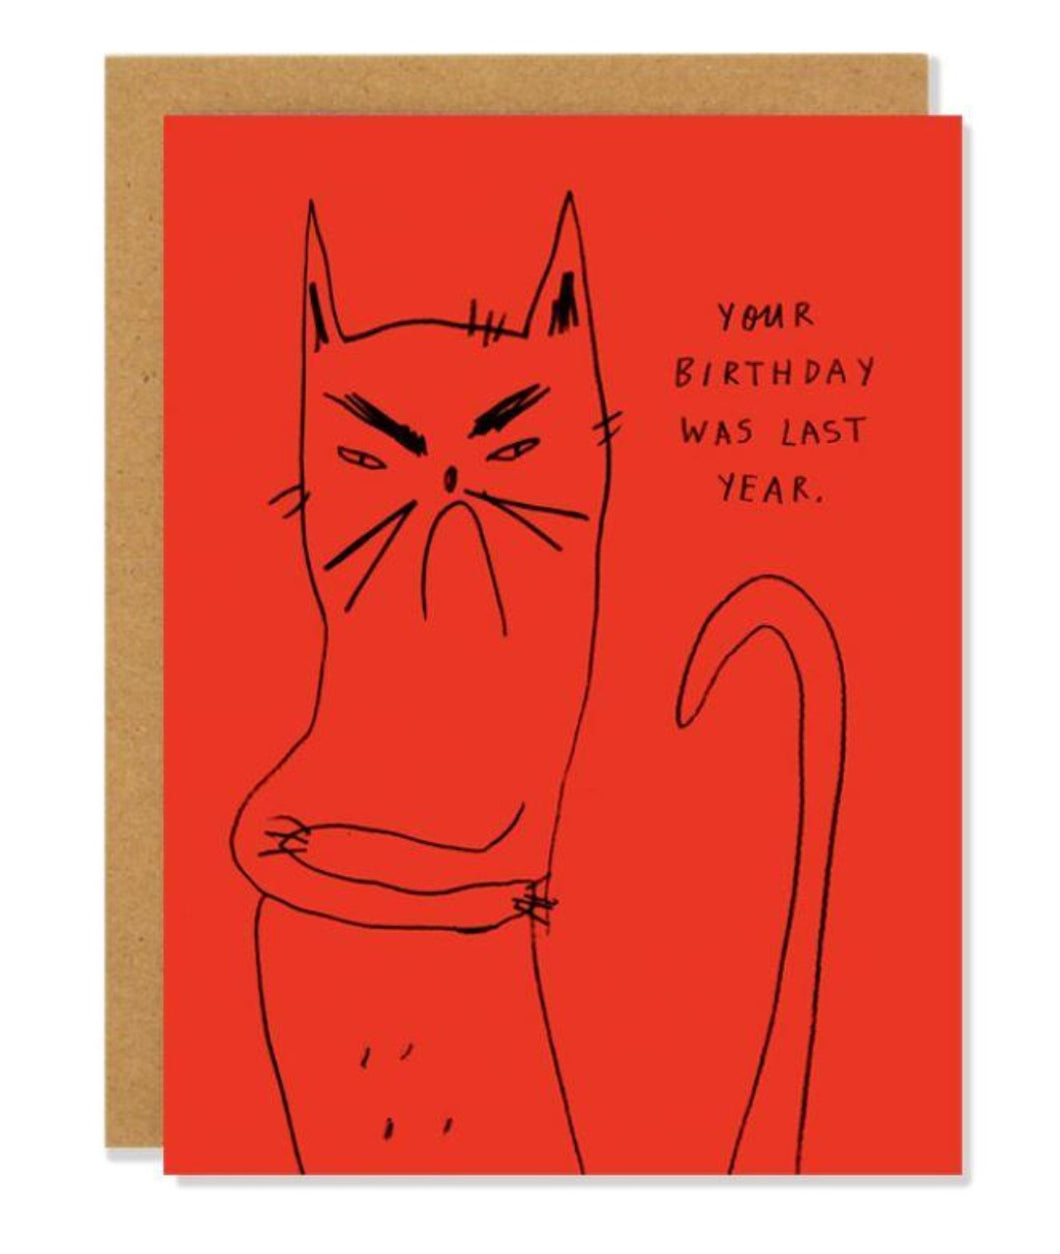 Pictured against a white background is a brown envelope with red card on it. The card has a simple line drawing illustration of a frowning cat with his arms crossed on it. On the upper right hand of the card, there is text written that says